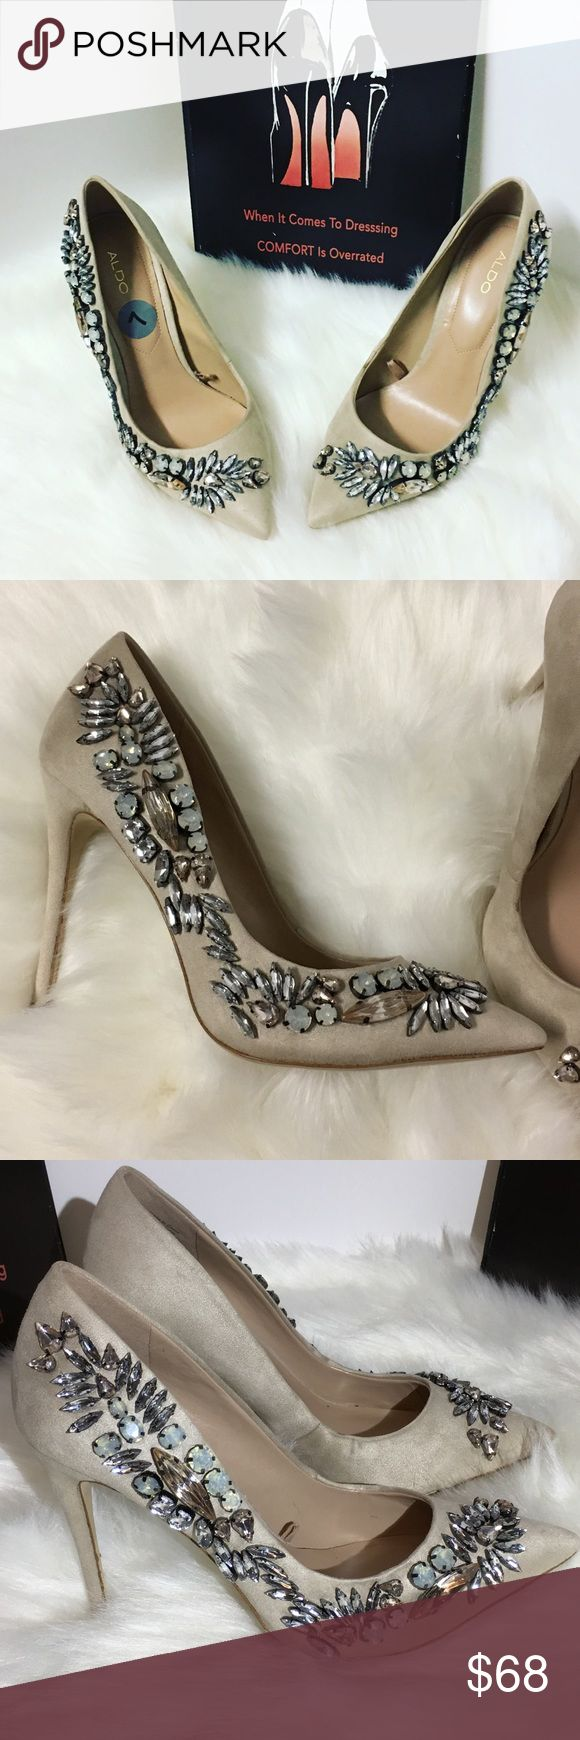 Last price reduction. Aldo heels Brand: aldo Style: rhinestone pump Color: nude  Heel height: 4 inches Size: 7  Condition: new with out tags Aldo Shoes Heels